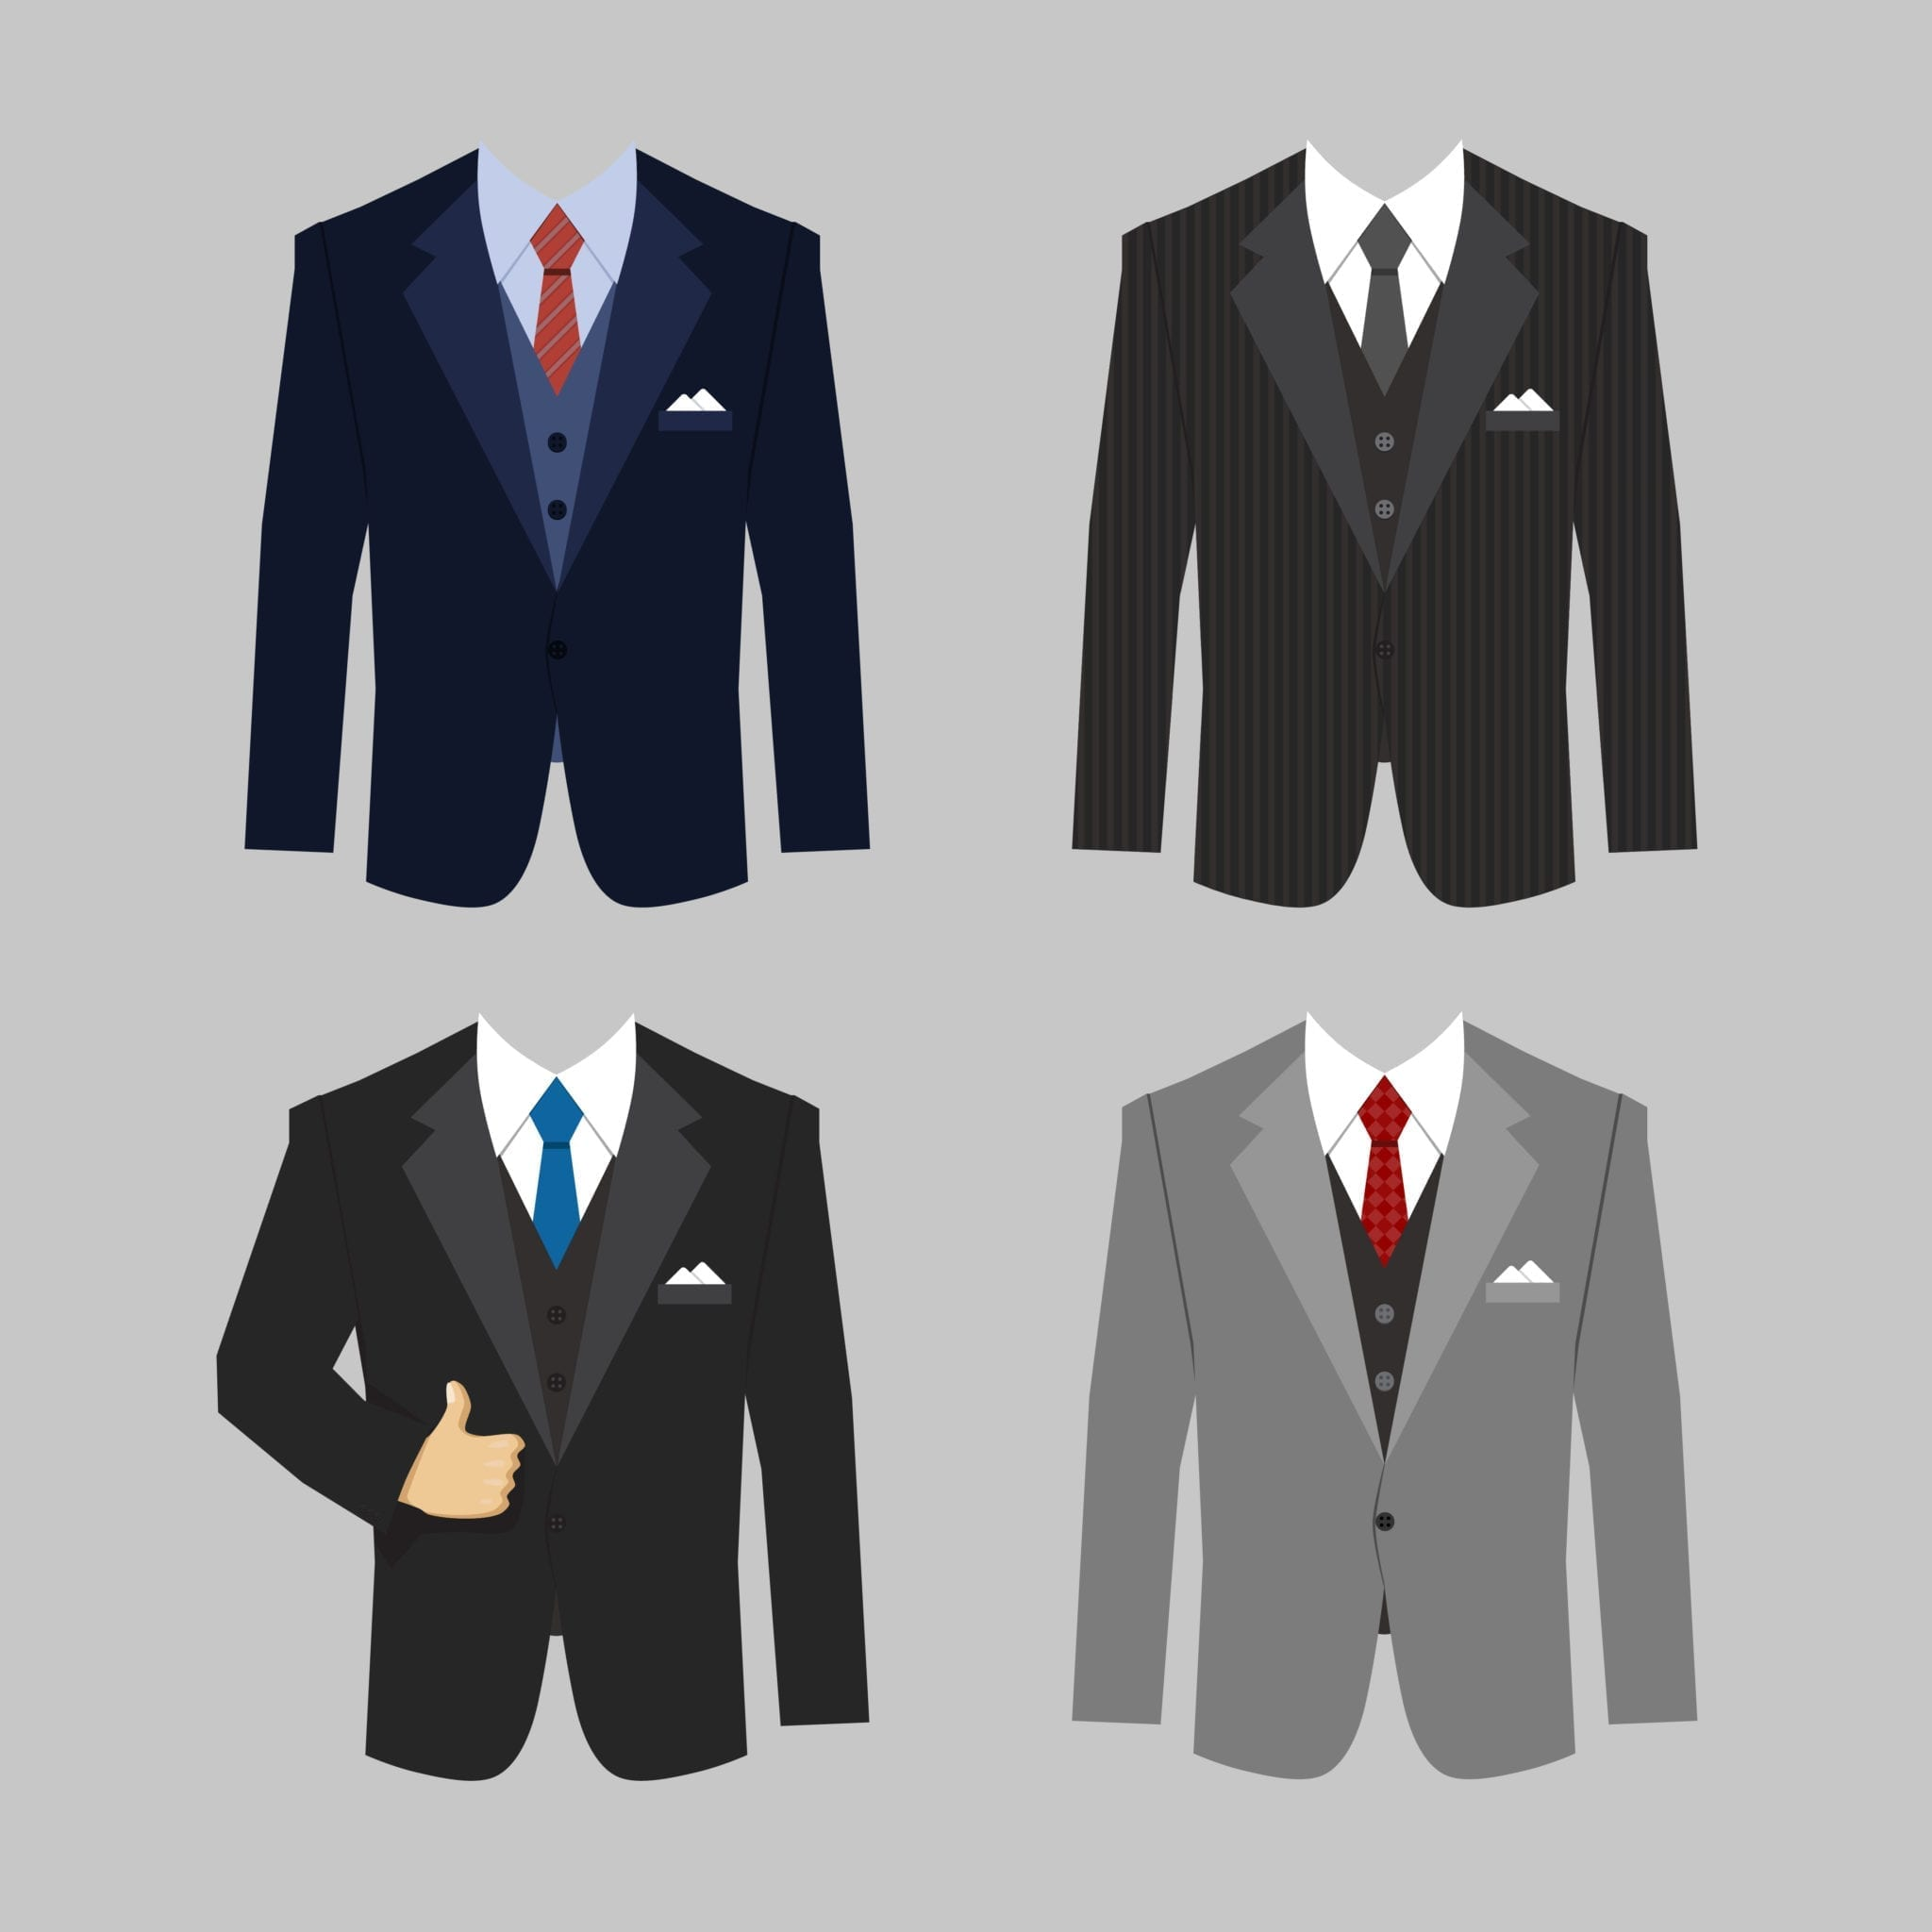 Men's Suit Jacket Styles